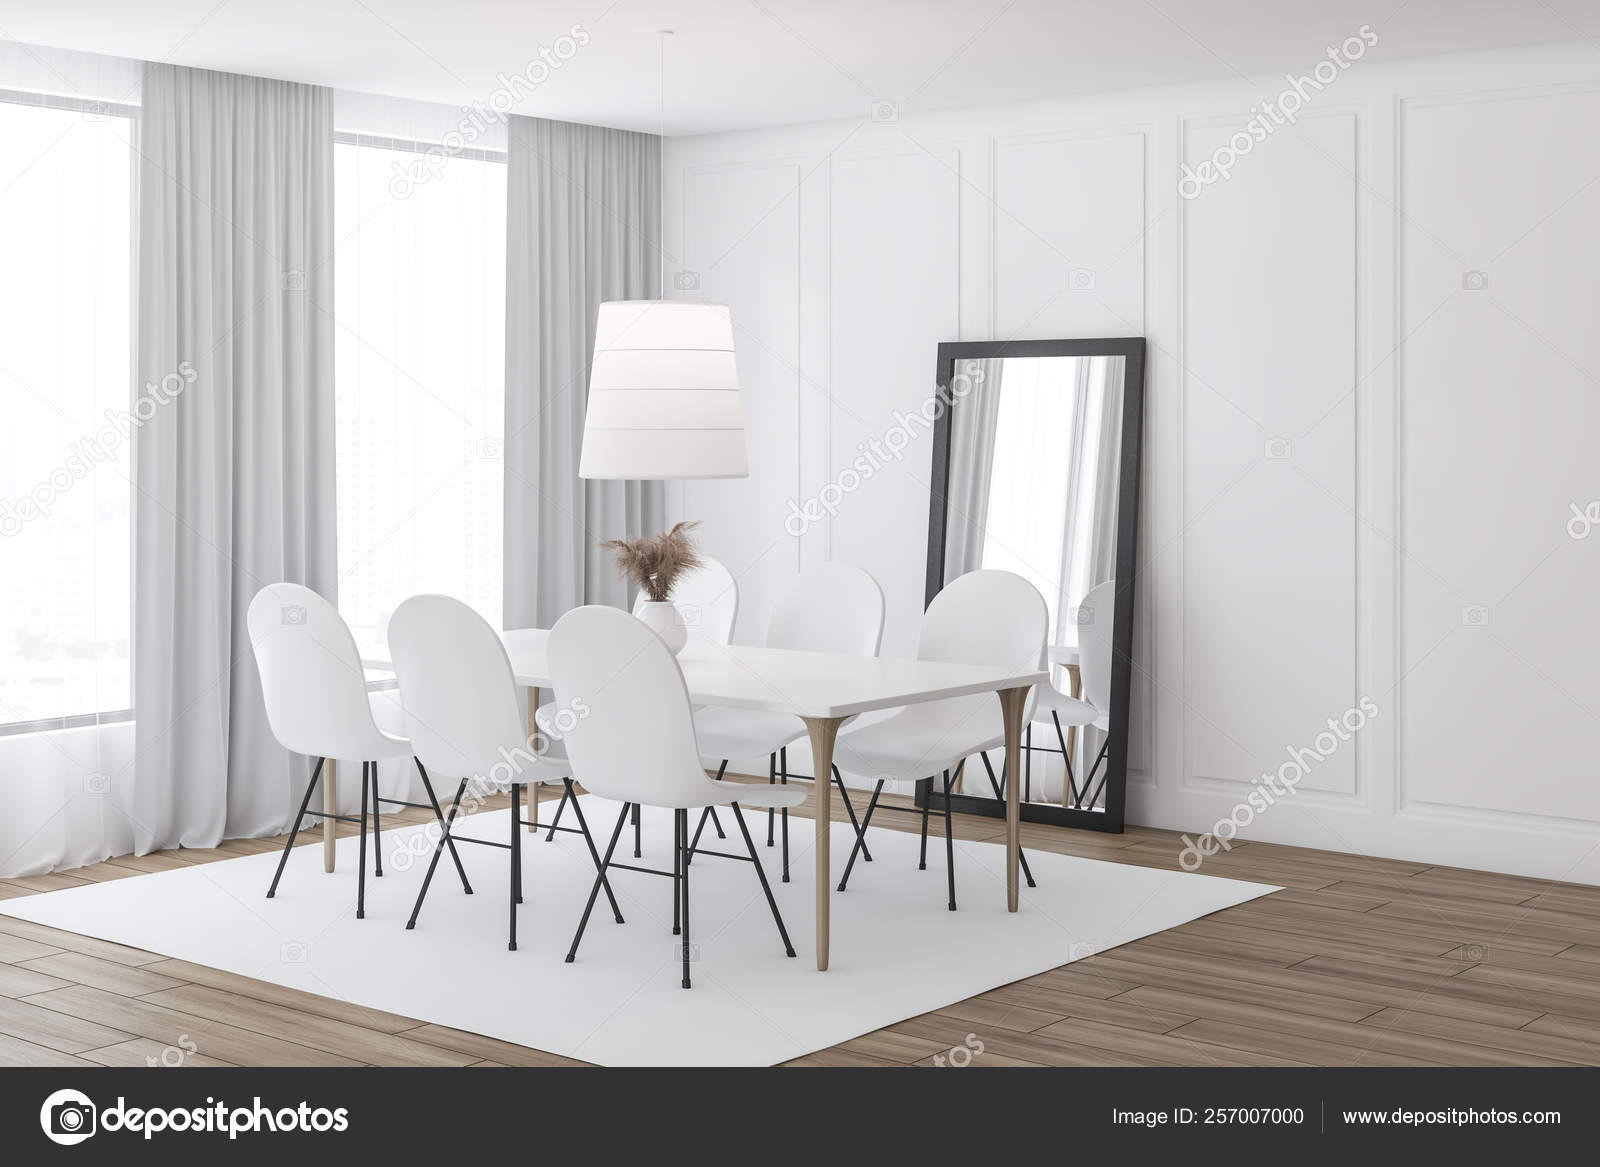 White Dining Room Corner With Mirror Stock Photo Image By Denisismagilov 257007000